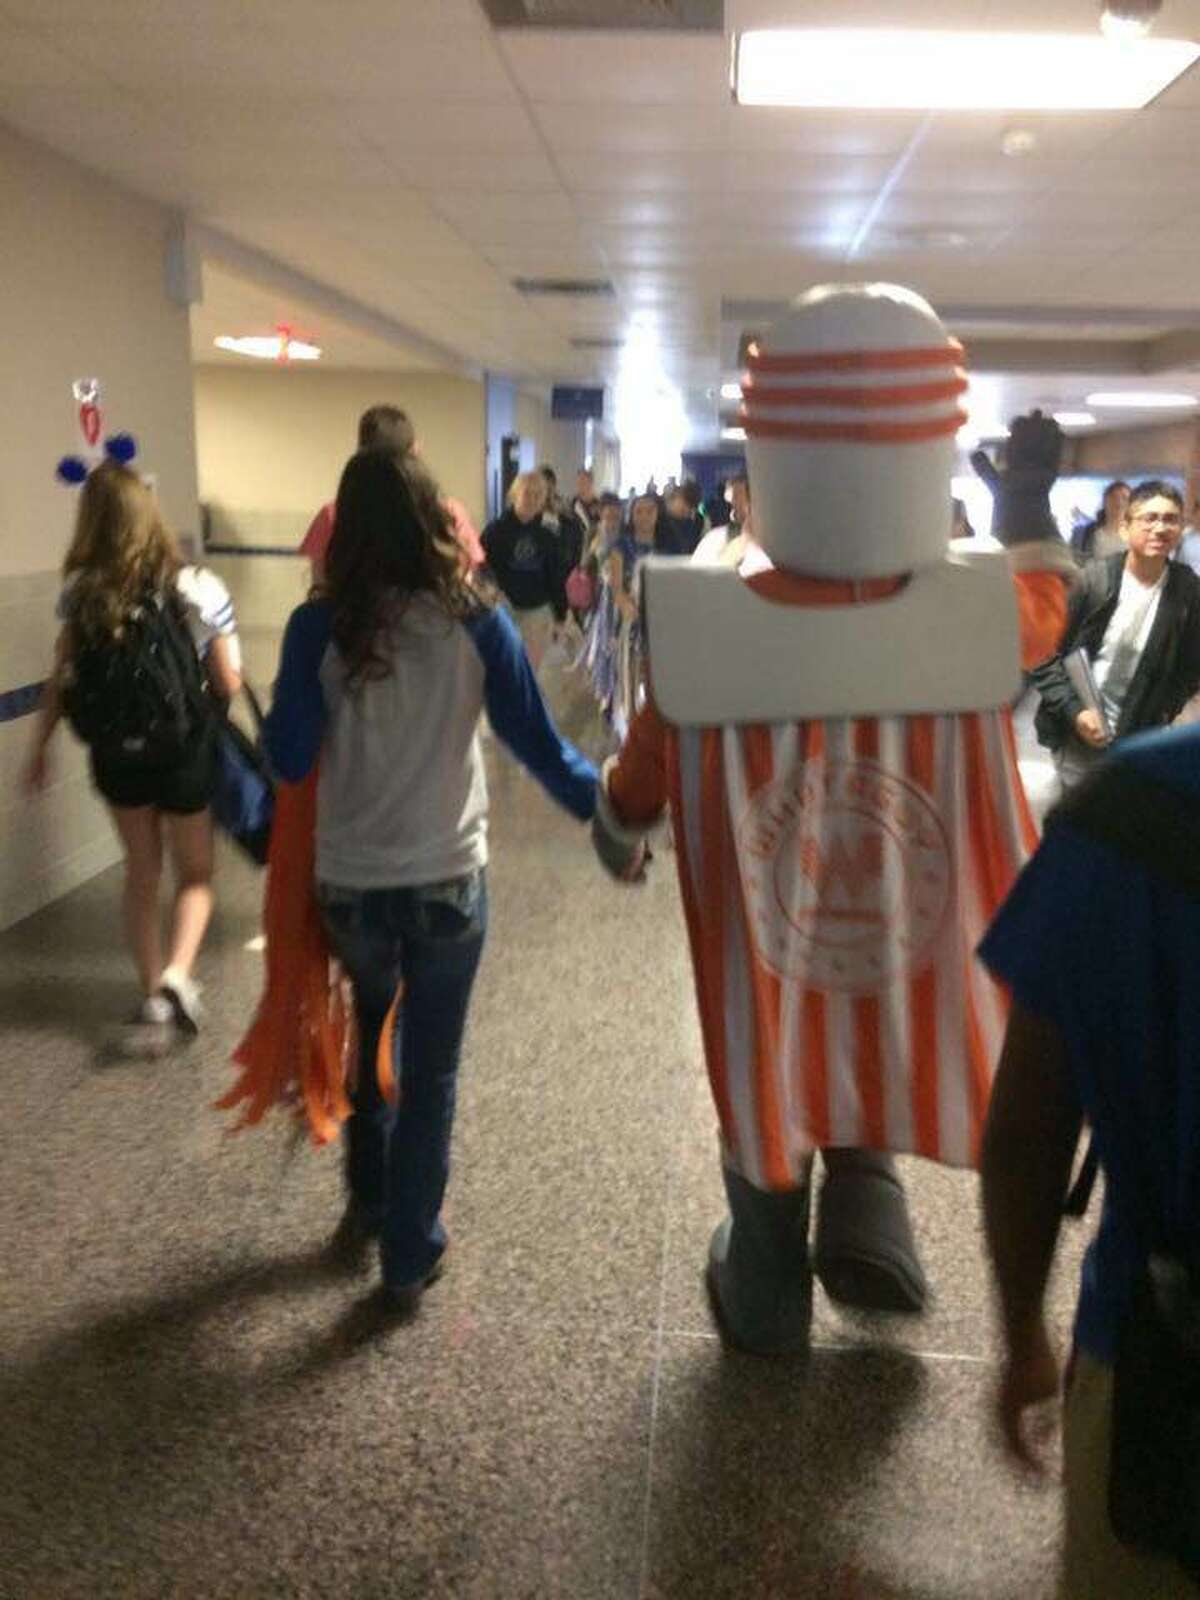 Friendswood freshman Gracie Kempken walks away with Whataguy, her homecoming date, after the Whataburger mascot accepted her invitation via tweet.